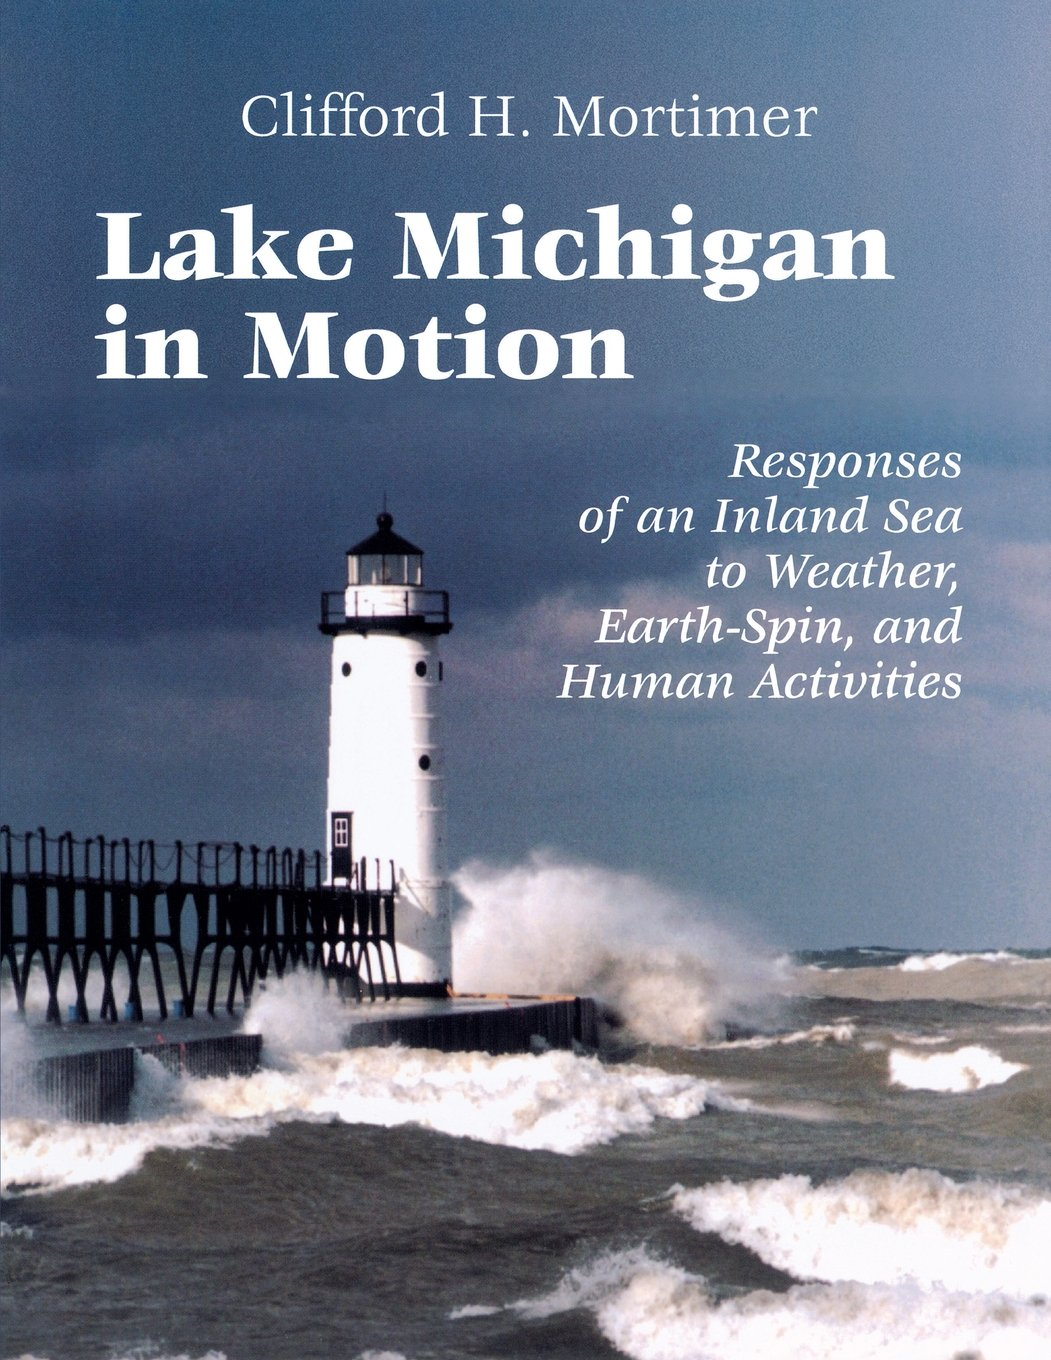 Download Lake Michigan in Motion:  Responses of an Inland Sea to Weather, Earth-Spin, and Human Activities ebook